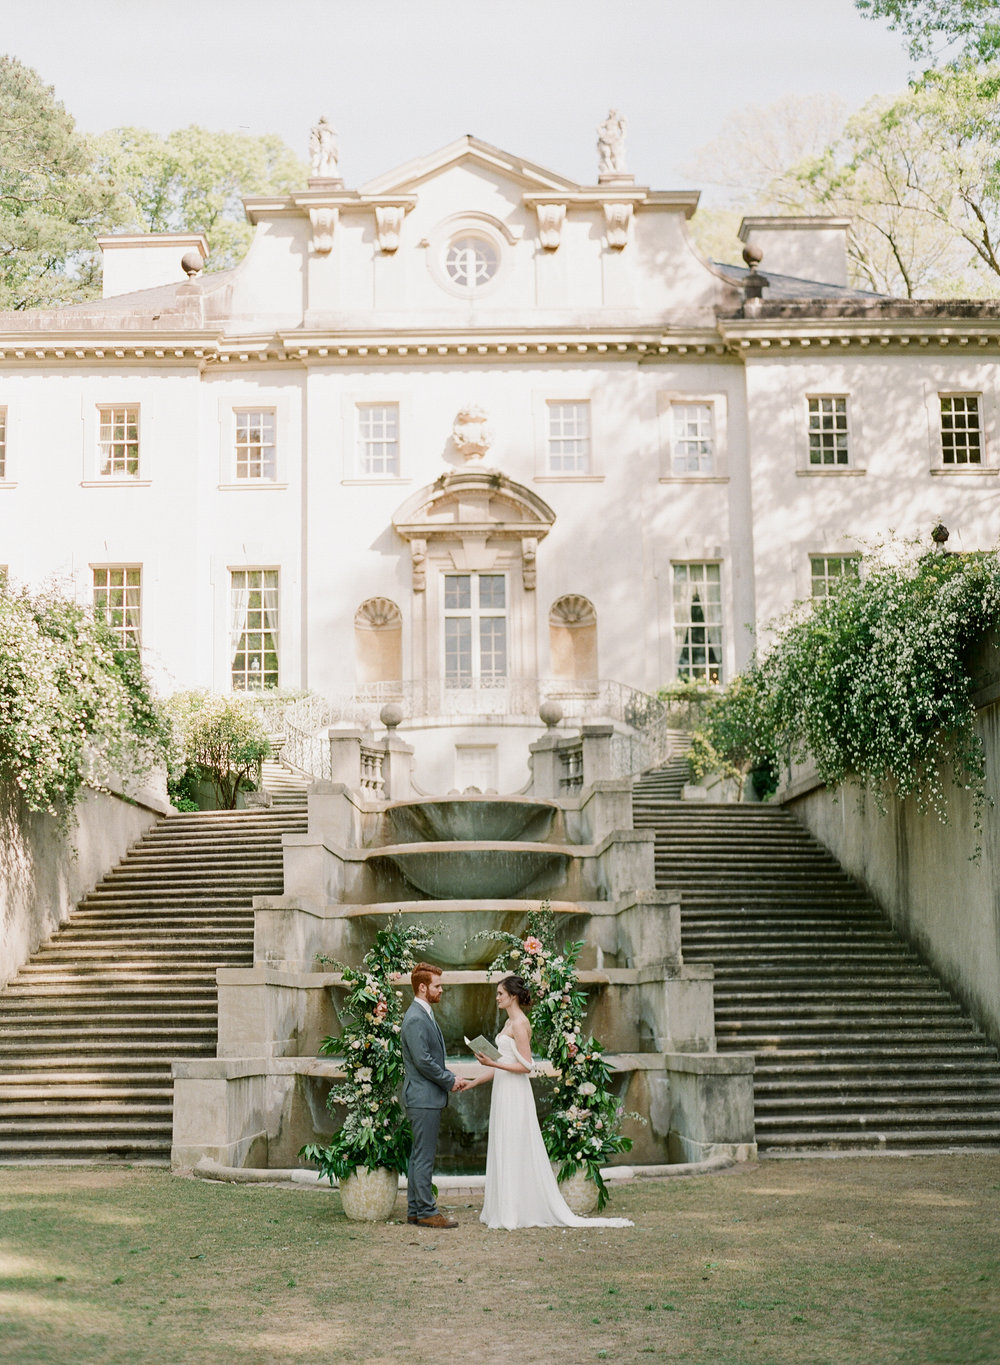 Swan house atlanta southeast wedding photographer taylor sellers photography 8.jpg